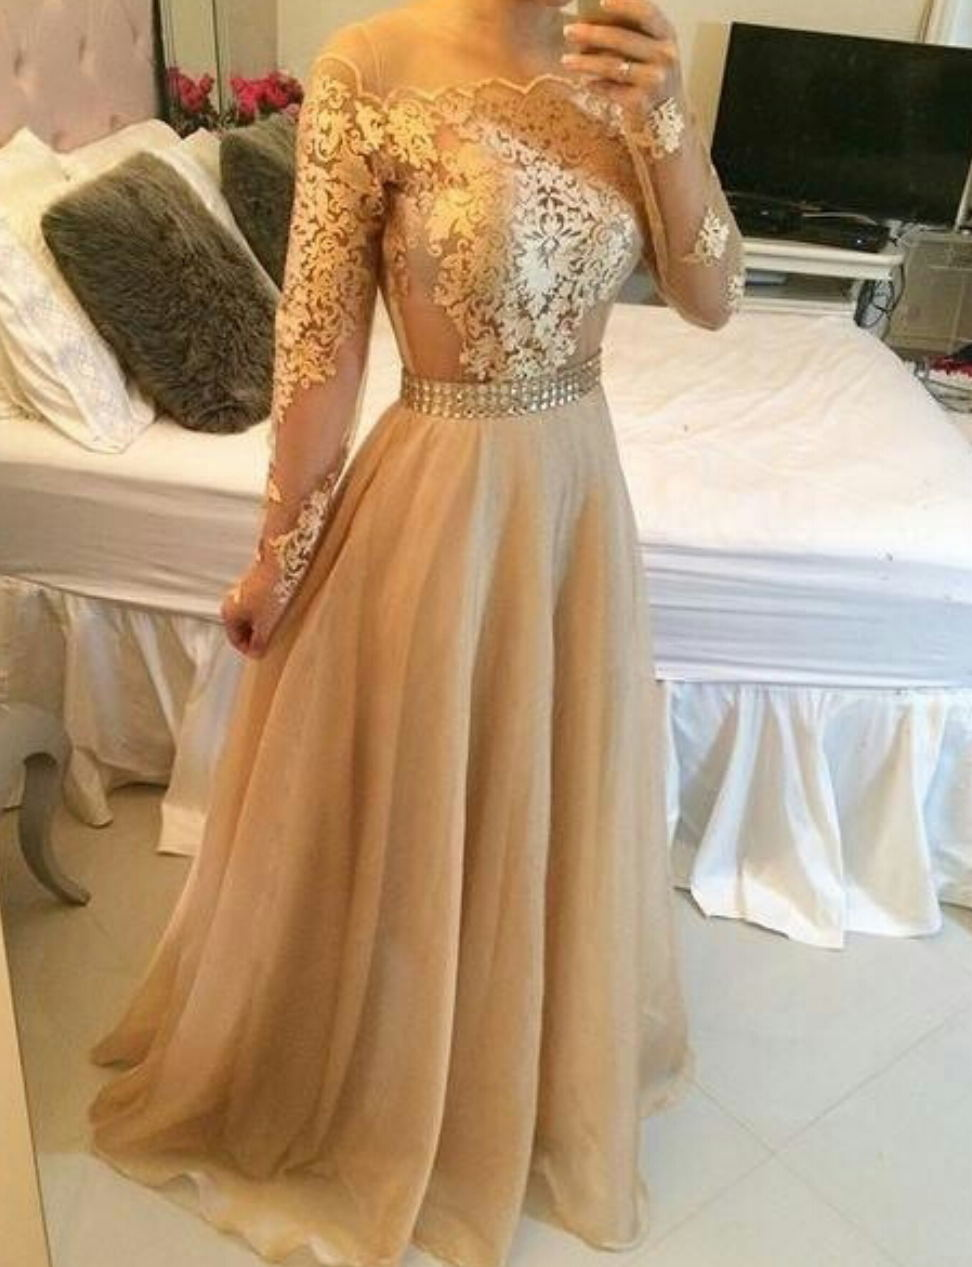 2019 year for lady- Formal long dresses tumblr